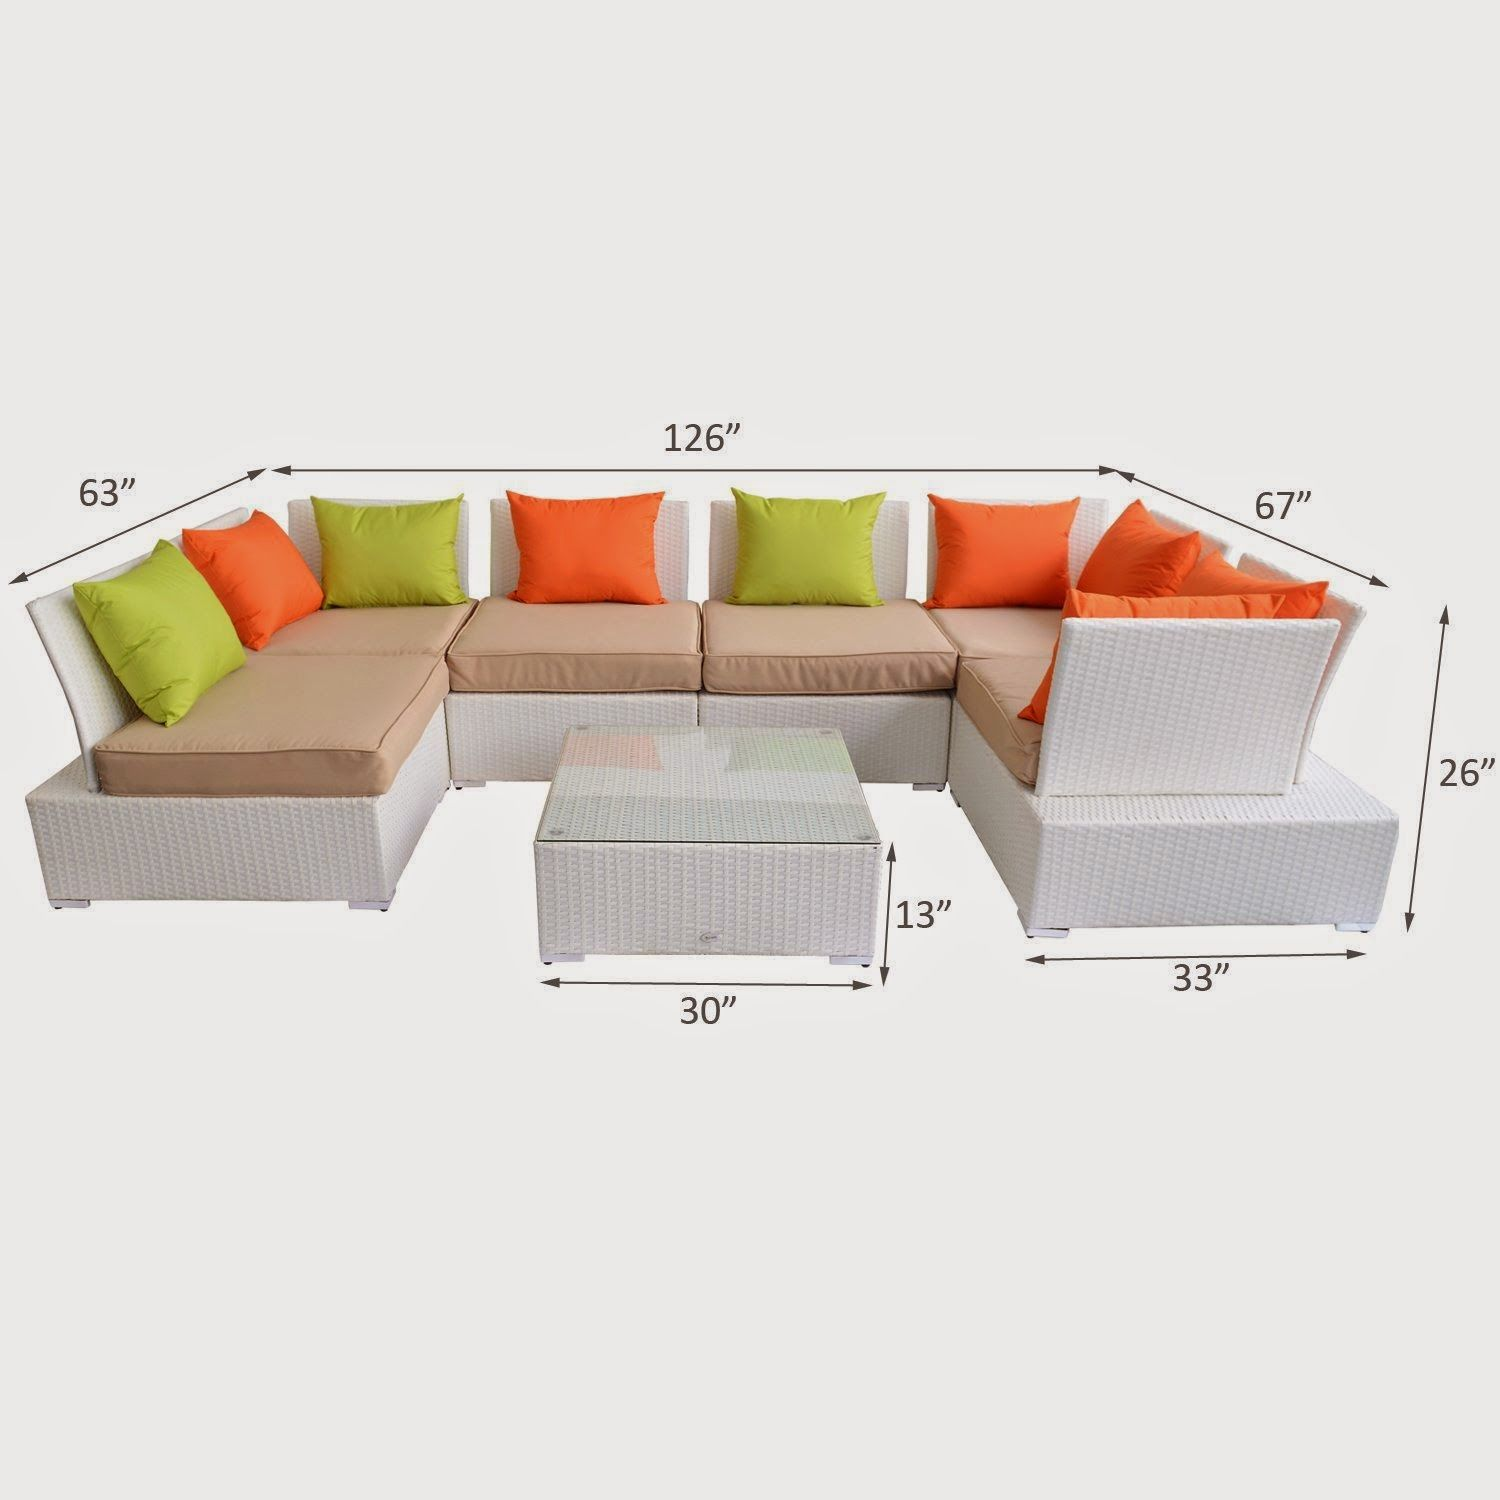 Discount Until 62% Outsunny Outdoor 7pc PE Rattan Wicker Sectional